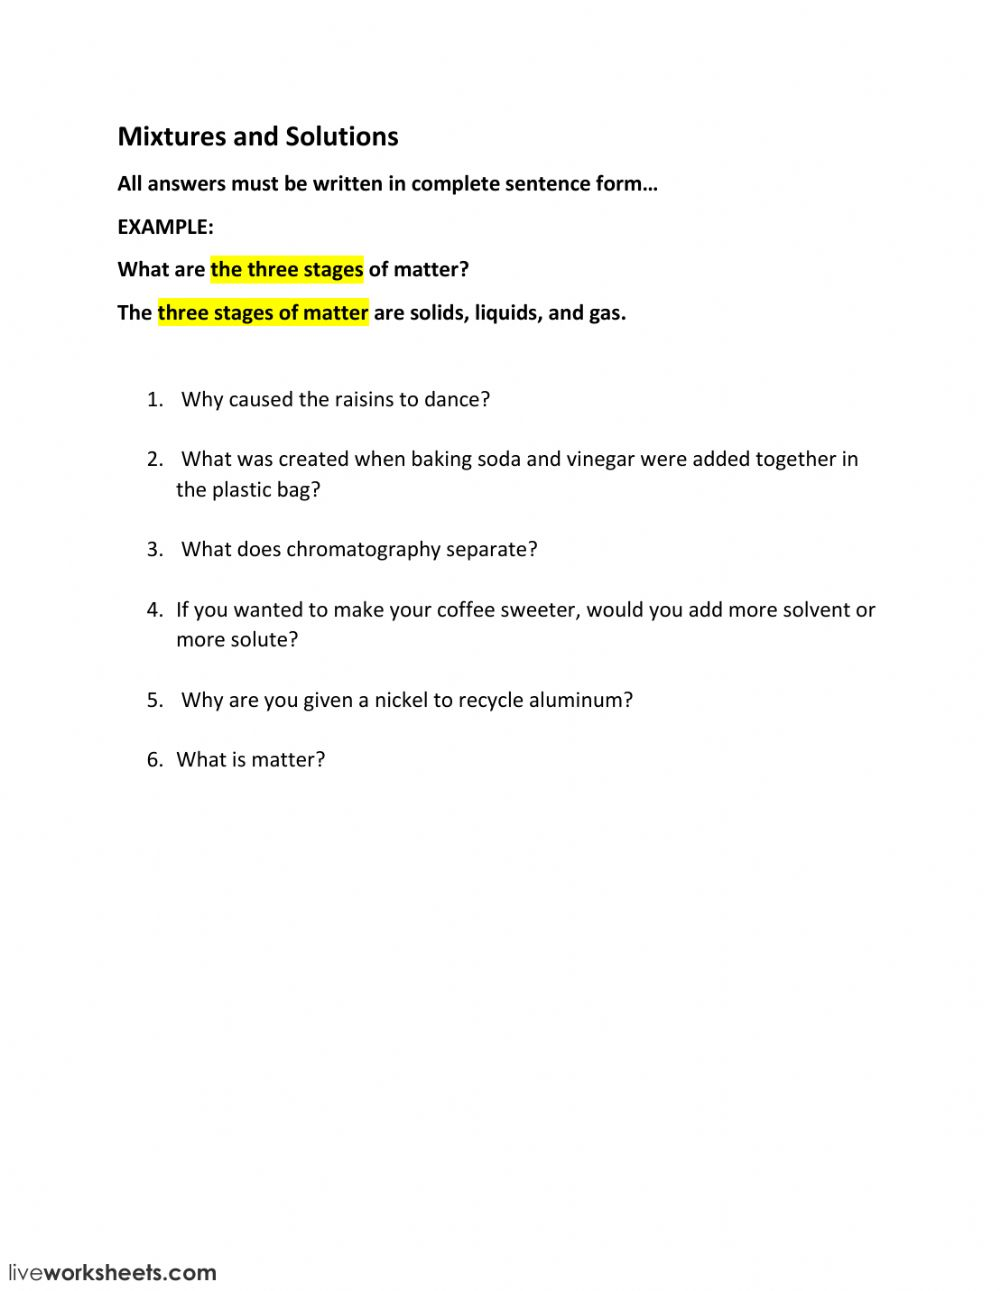 hight resolution of MIXTURES AND SOLUTIONS WORKSHEETS 5TH GRADE ANSWERS ANSWER - Bestseller: 5th  Grade Worksheet Mixtures And Solutions ...